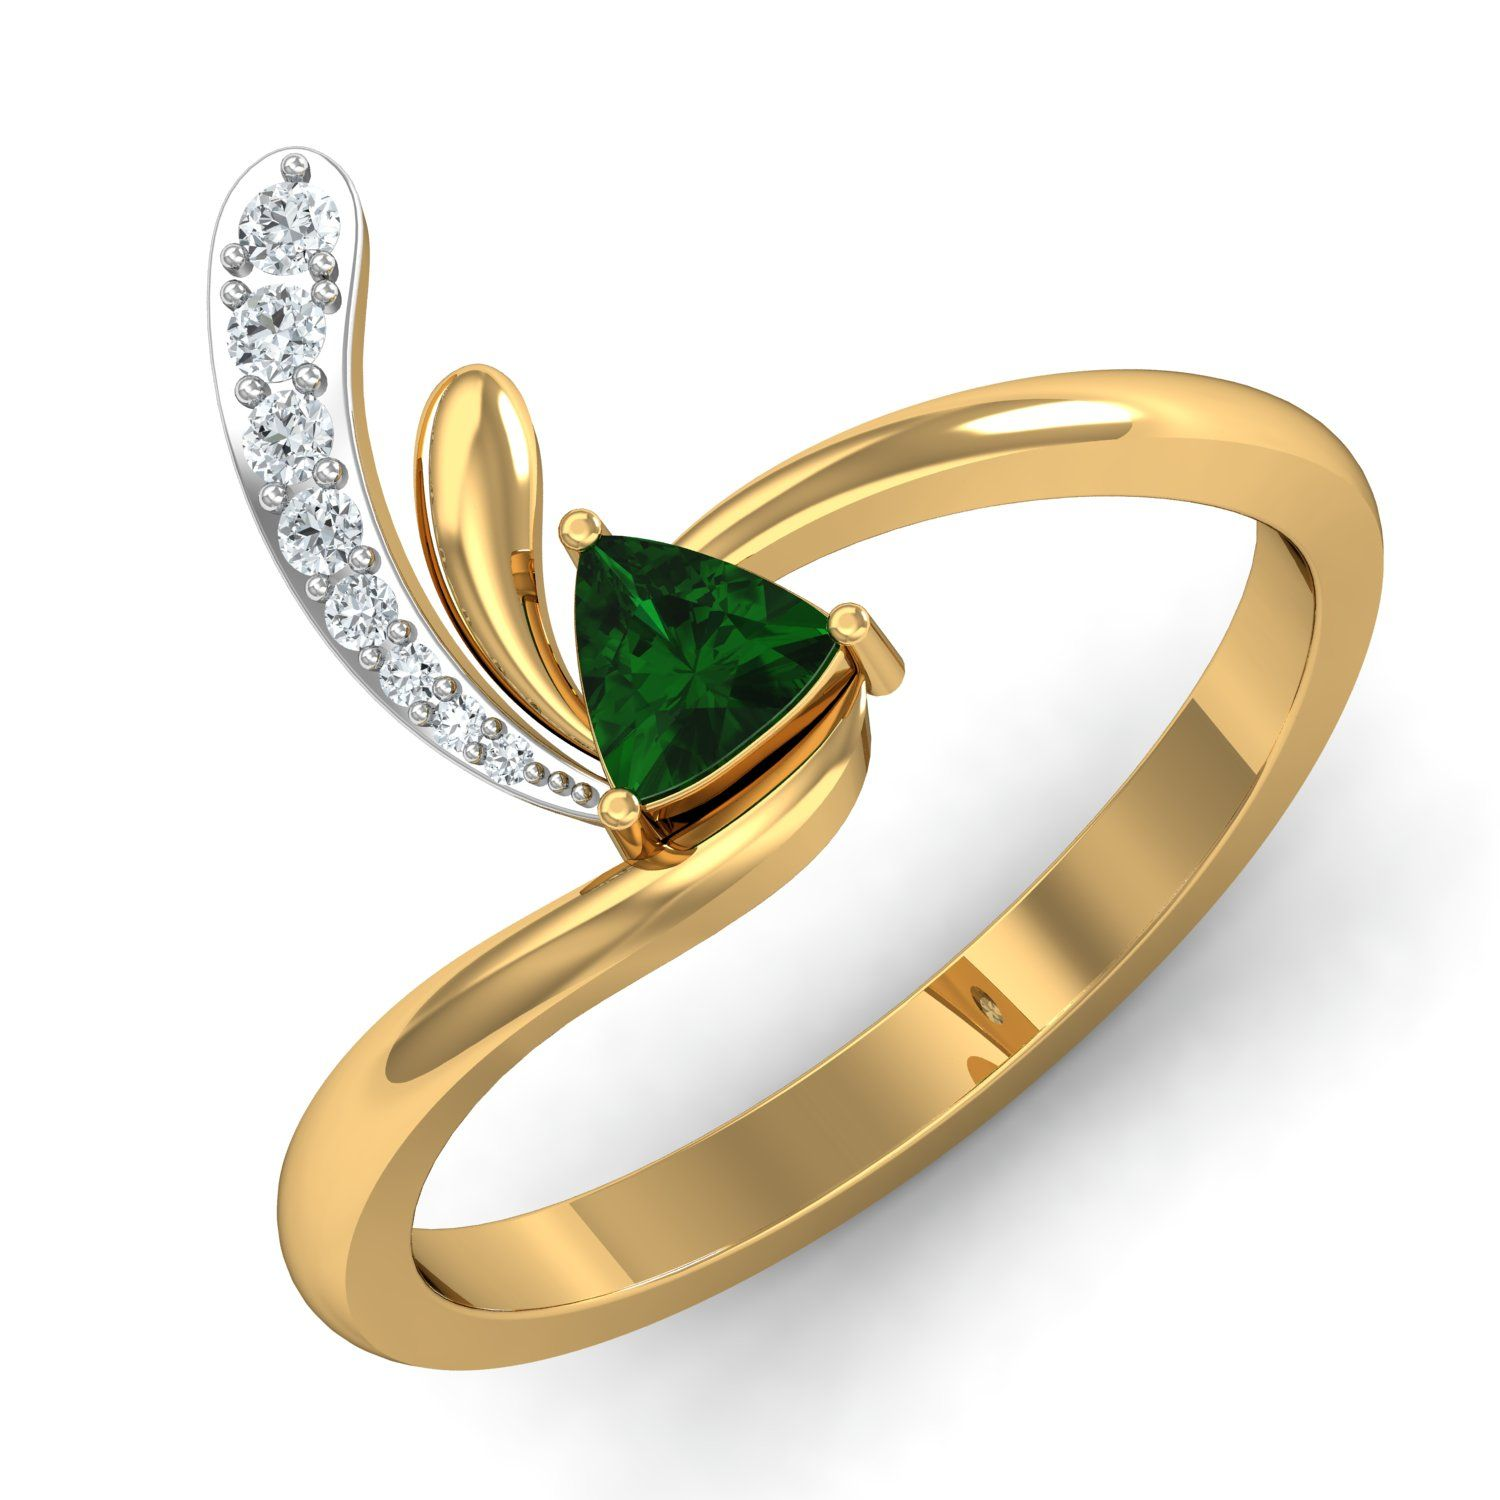 mccaul mandarin goldsmiths hand tsavorite rings ring commission and garnet carved gold green